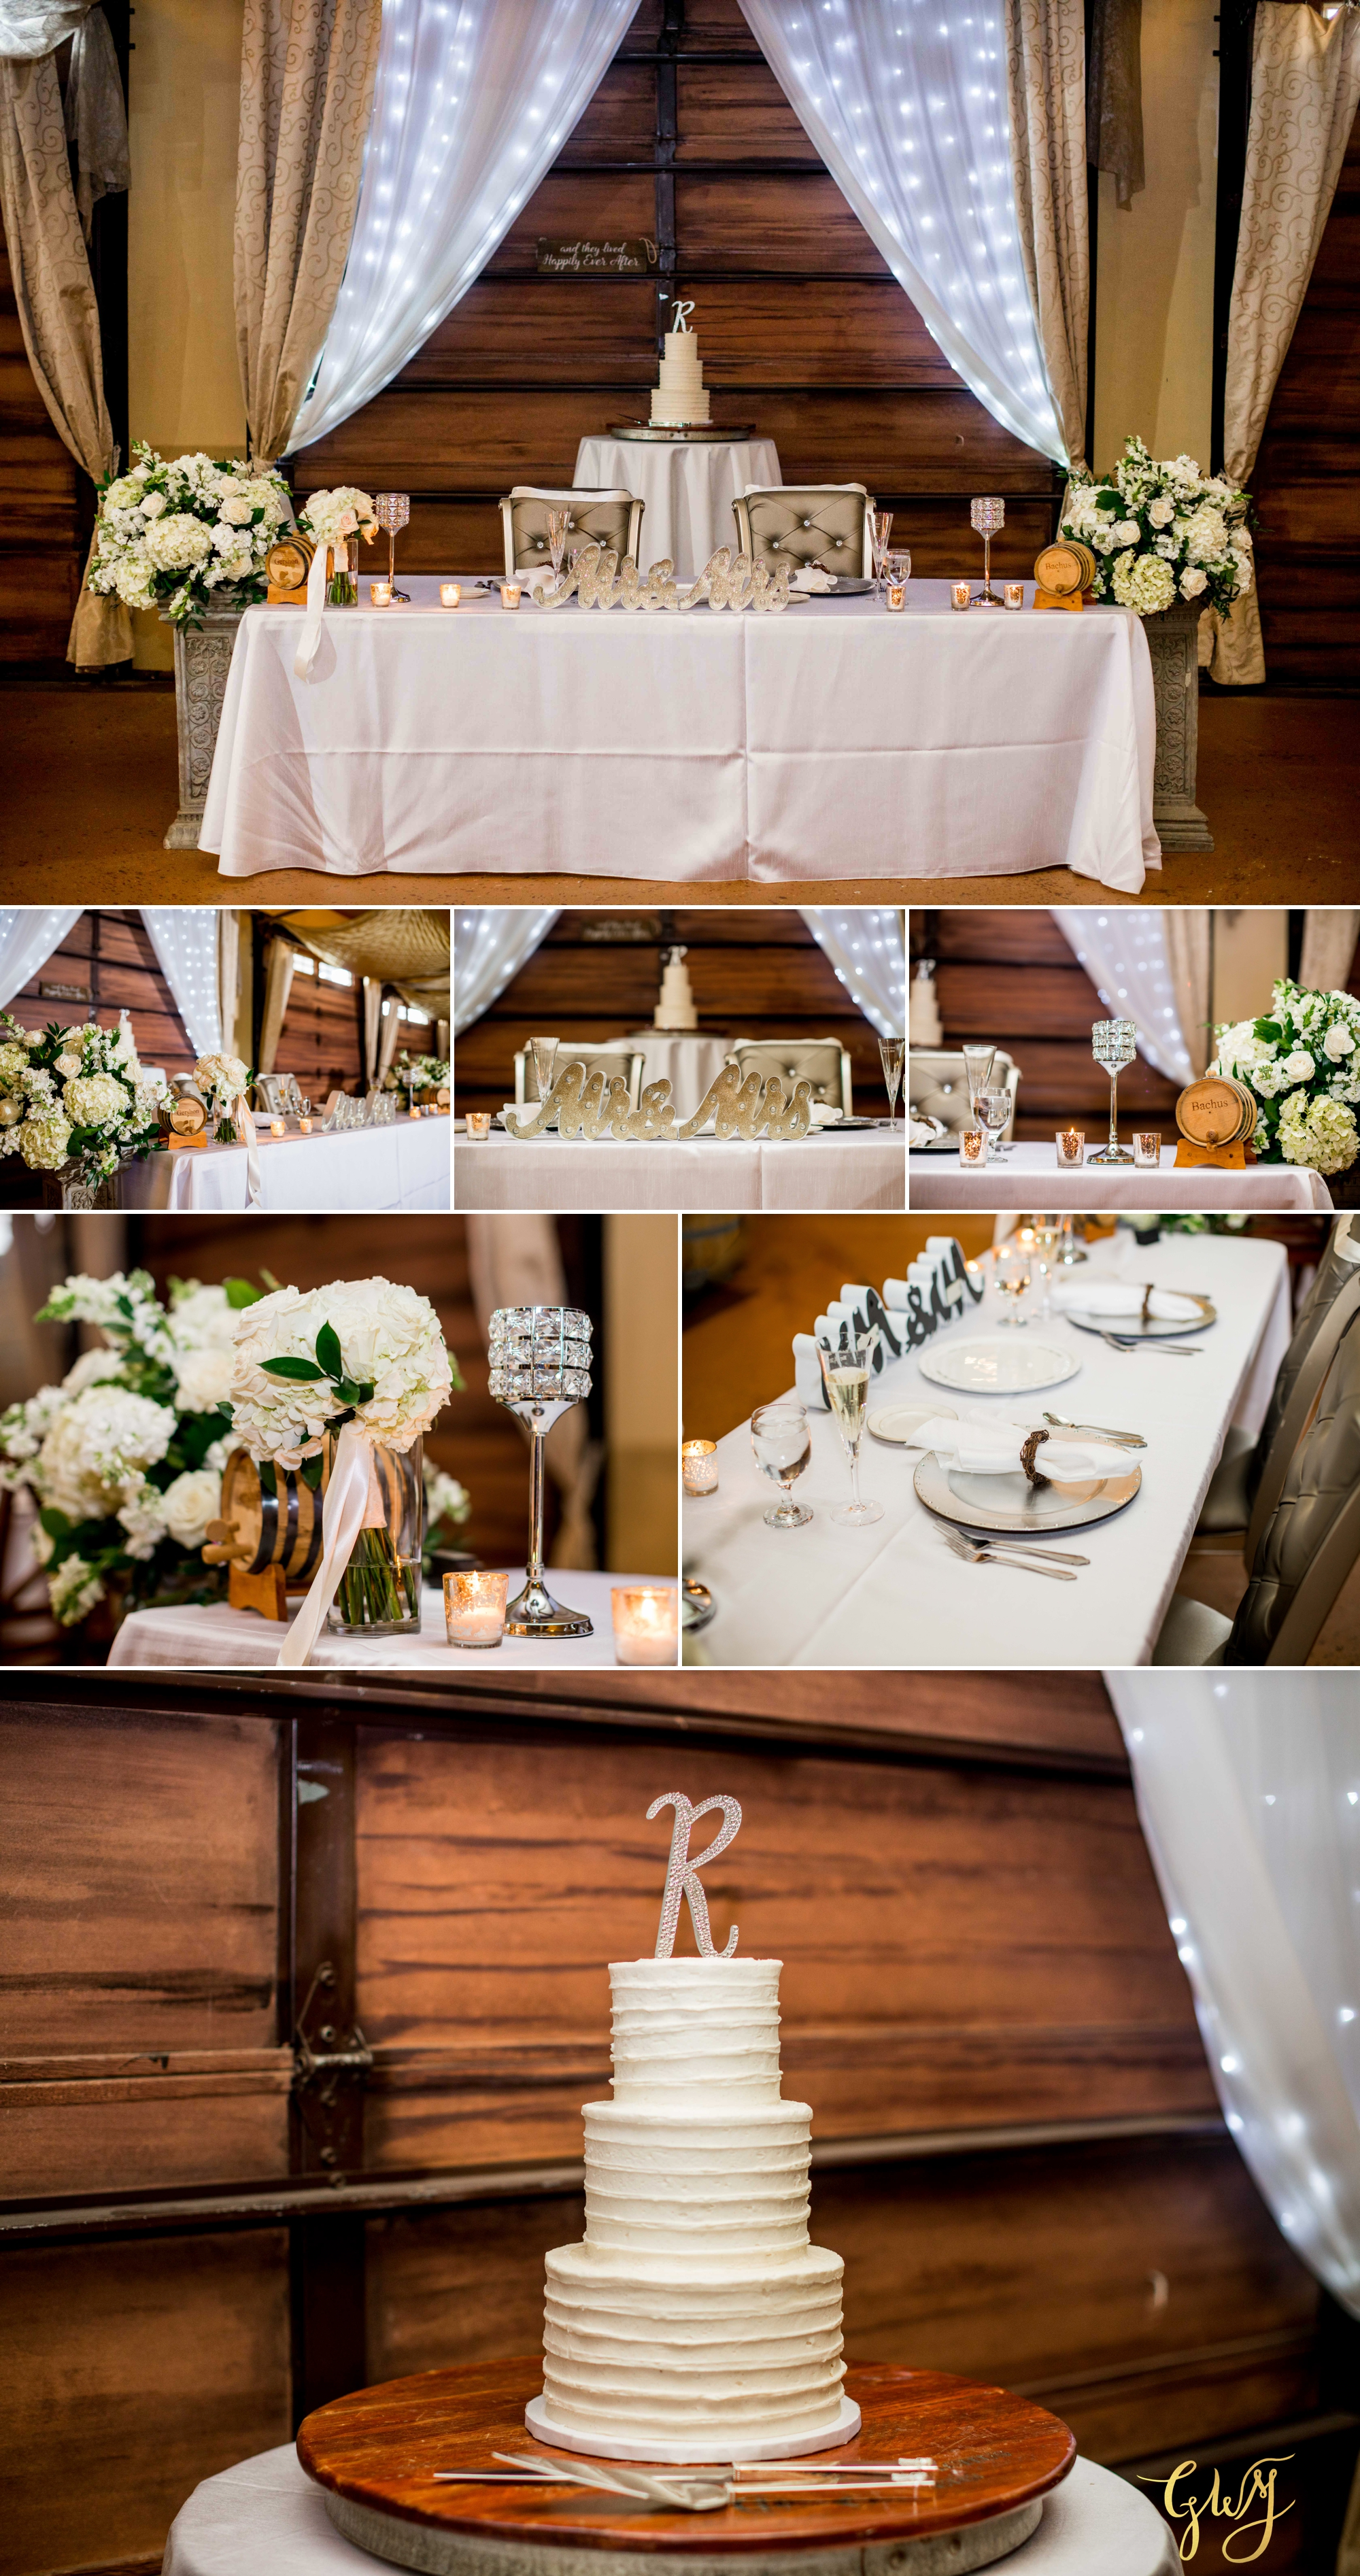 Kristen + Krsto's Romantic Temecula Winery Spring Wedding by Glass Woods Media 46.jpg